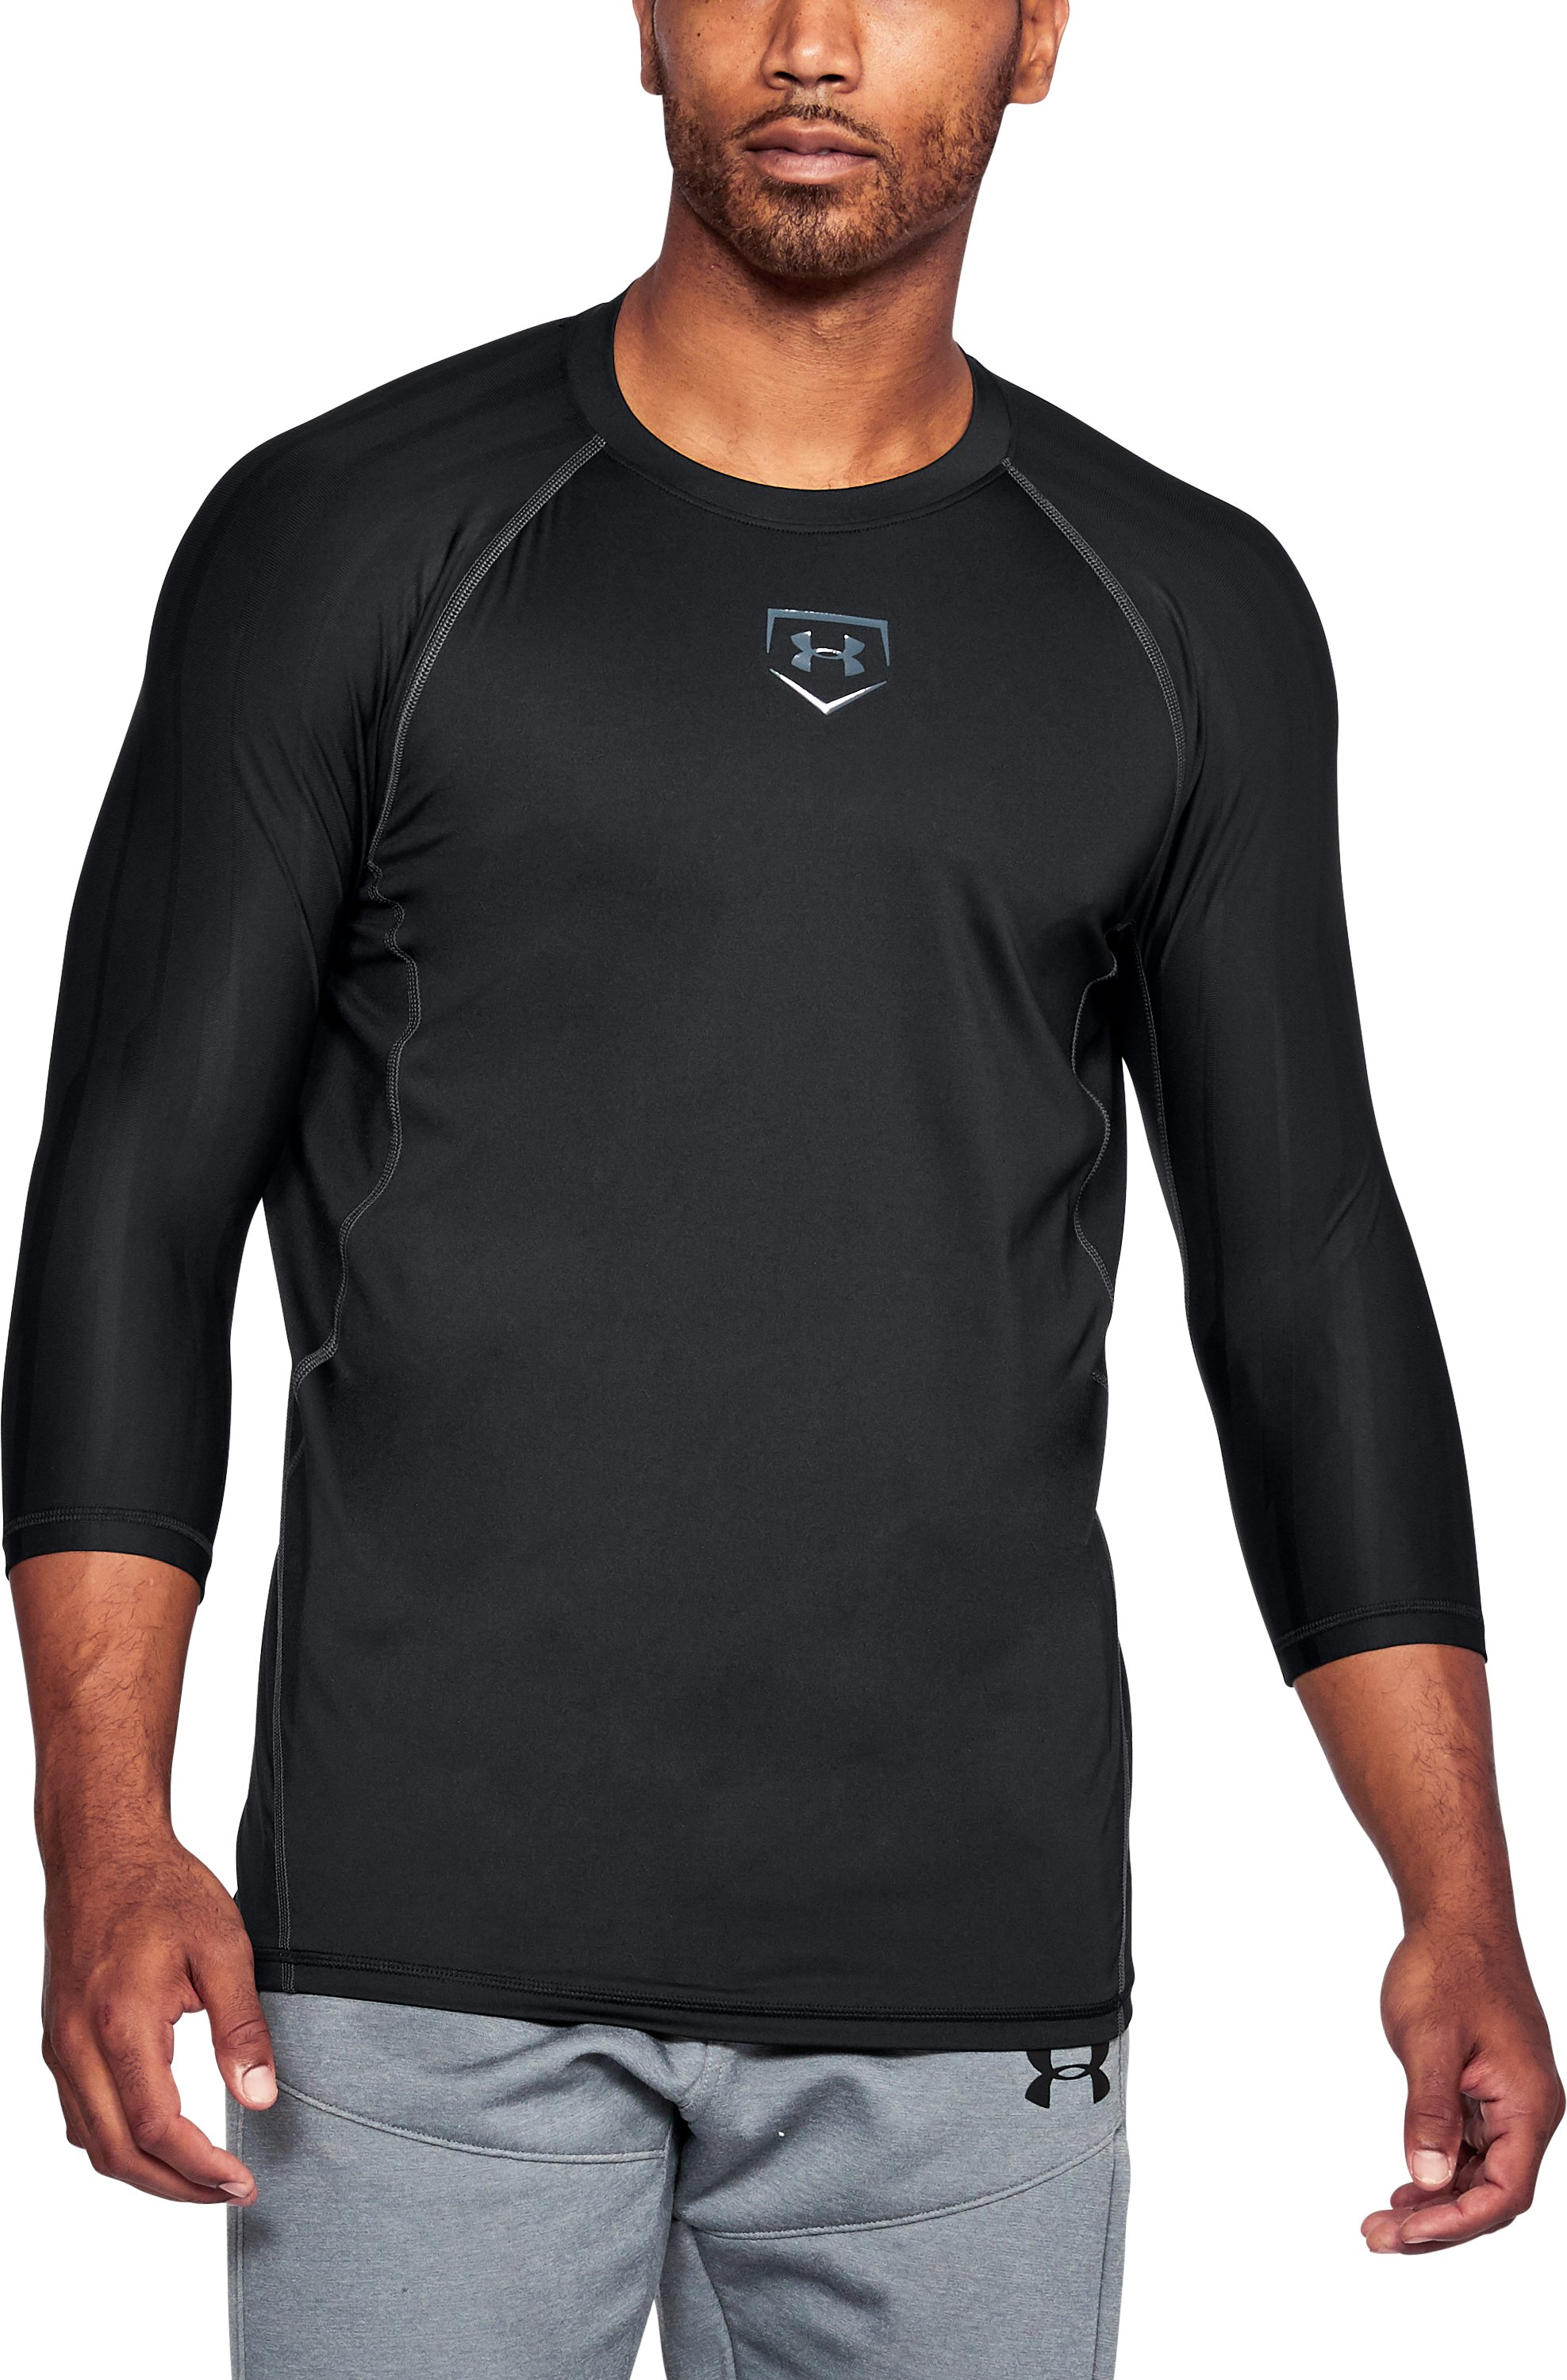 Men's HeatGear® Armour Zone Compression ¾ Sleeve T-Shirt, Black